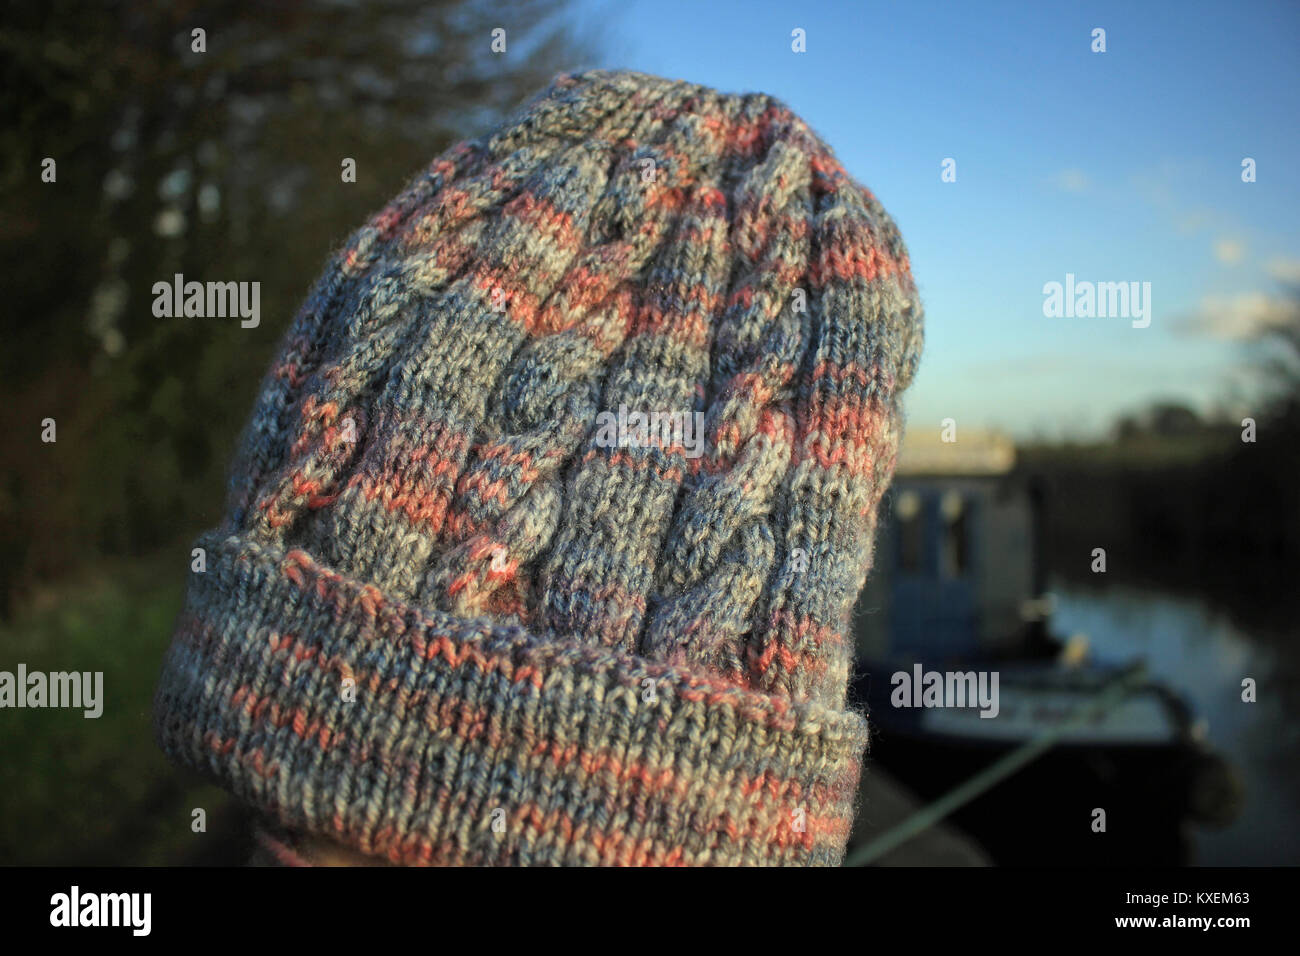 A lovely soft hand knitted adult's beanie type hat which is knitted from a yarn that has grey and pink shades with - Stock Image